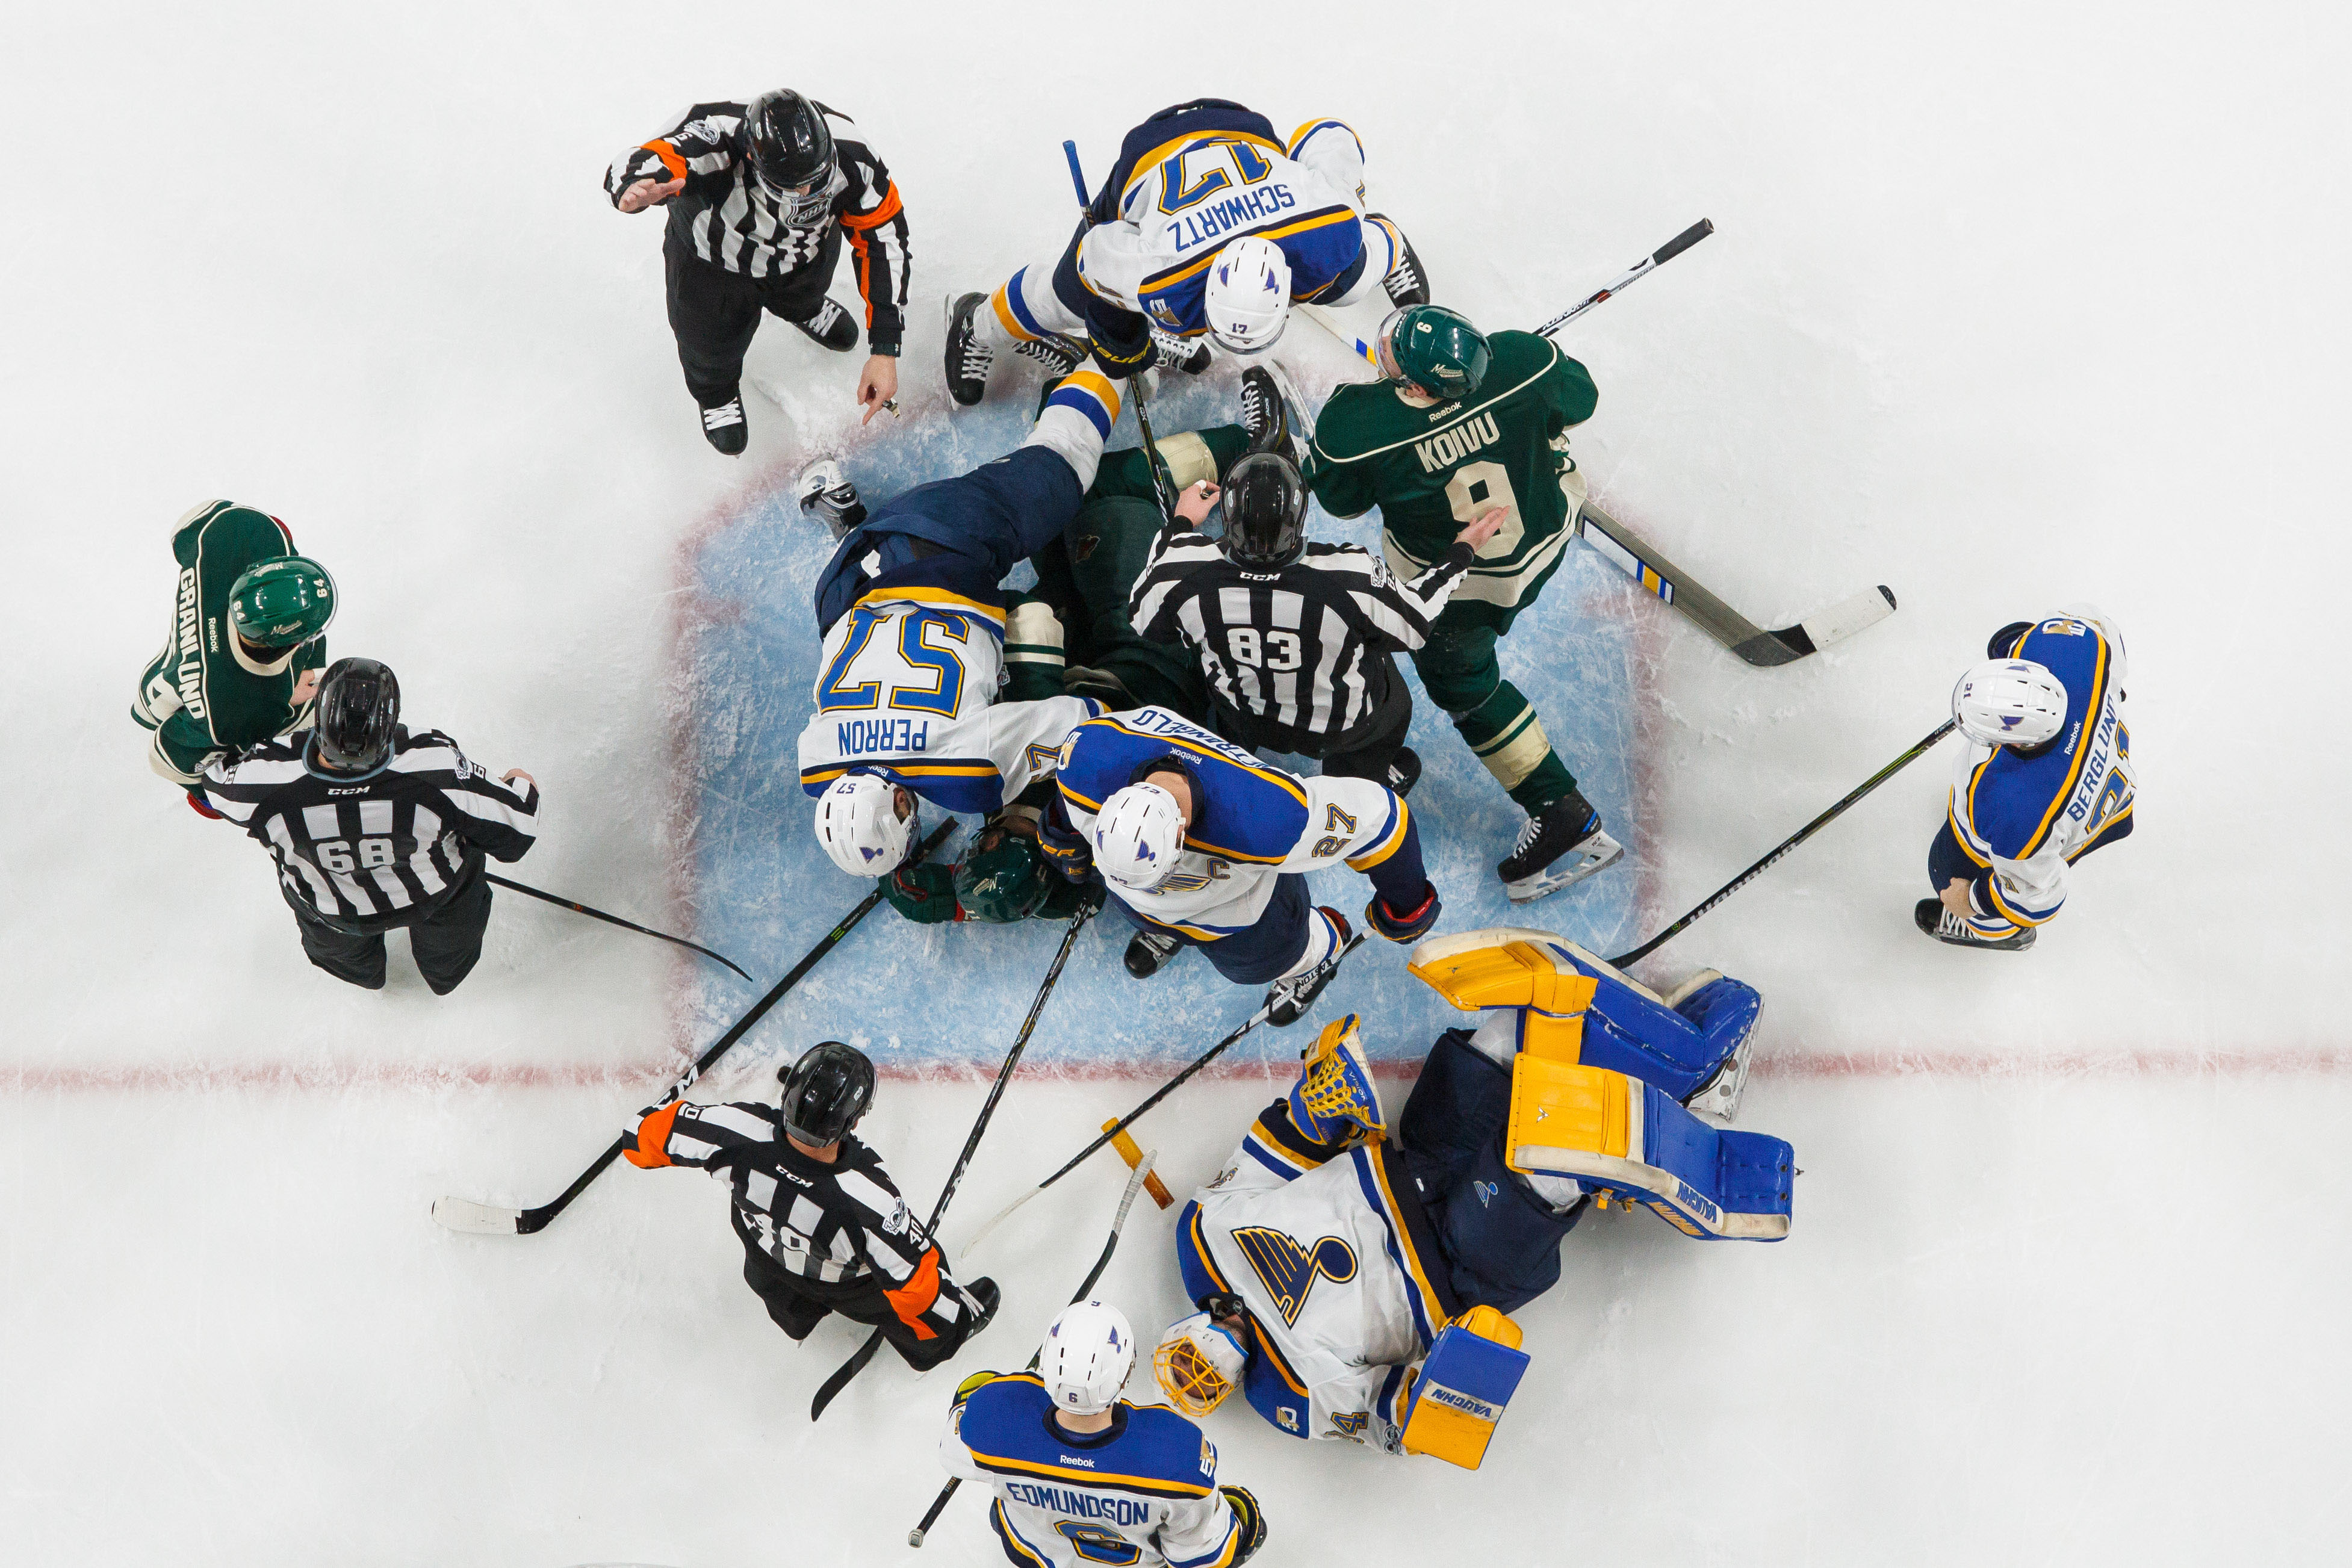 blues push wild to brink of elimination win in game  the minnesota wild have no time to play the blame game despite a demand for scapegoats the minnesota wild should keep a clear head as to why they lost